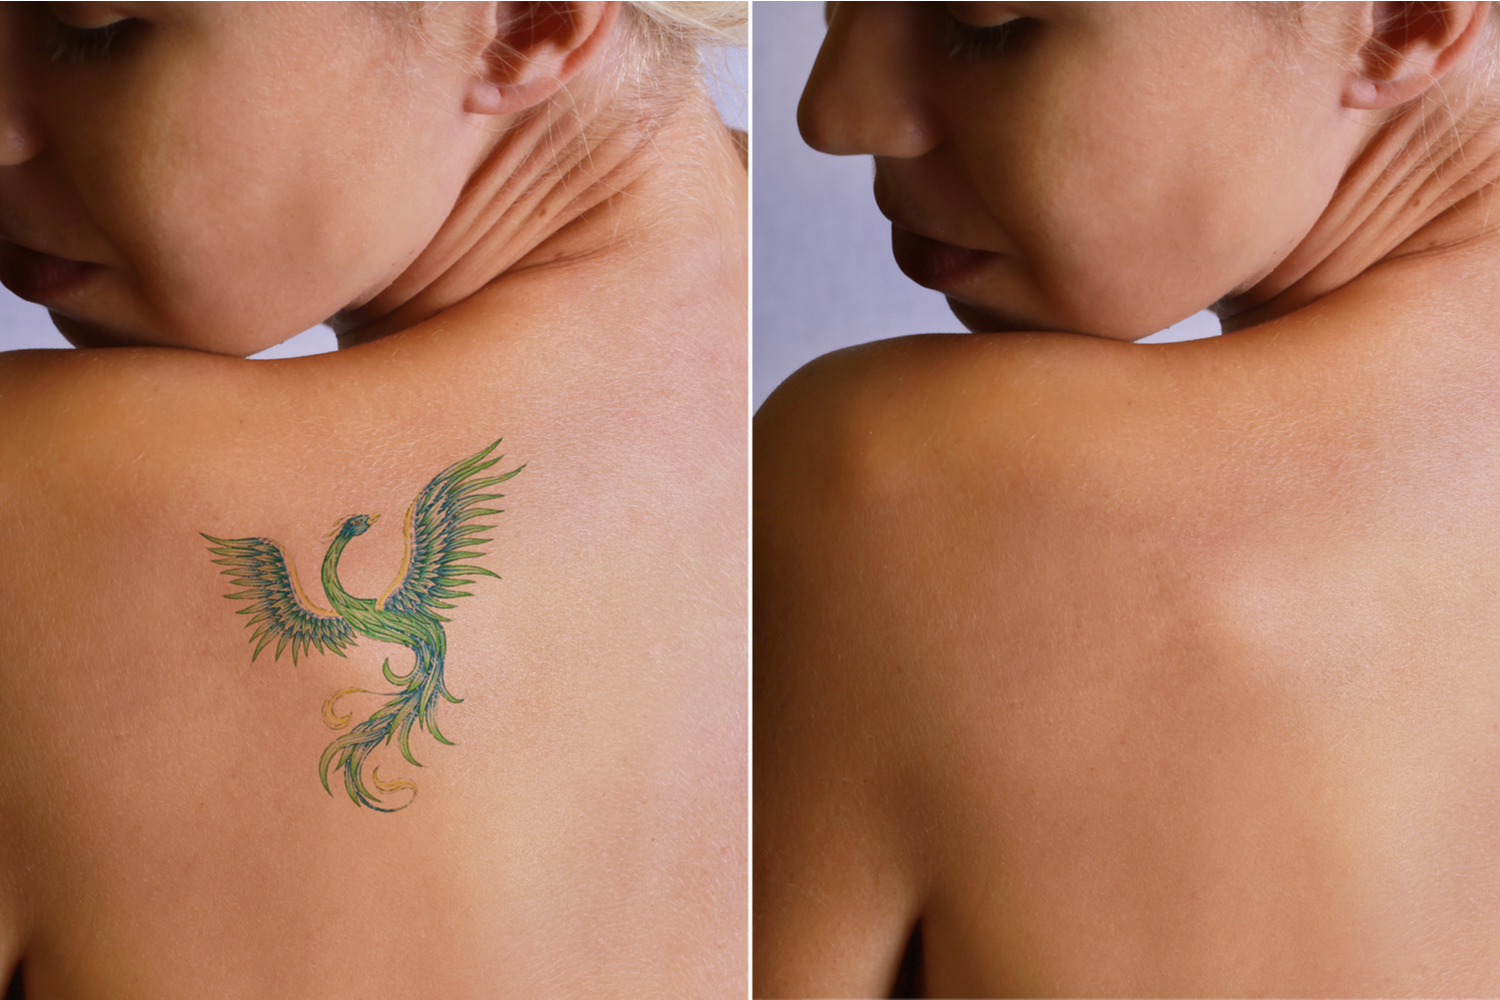 Tips to Maximize or Speed Up the Tattoo Removal Process